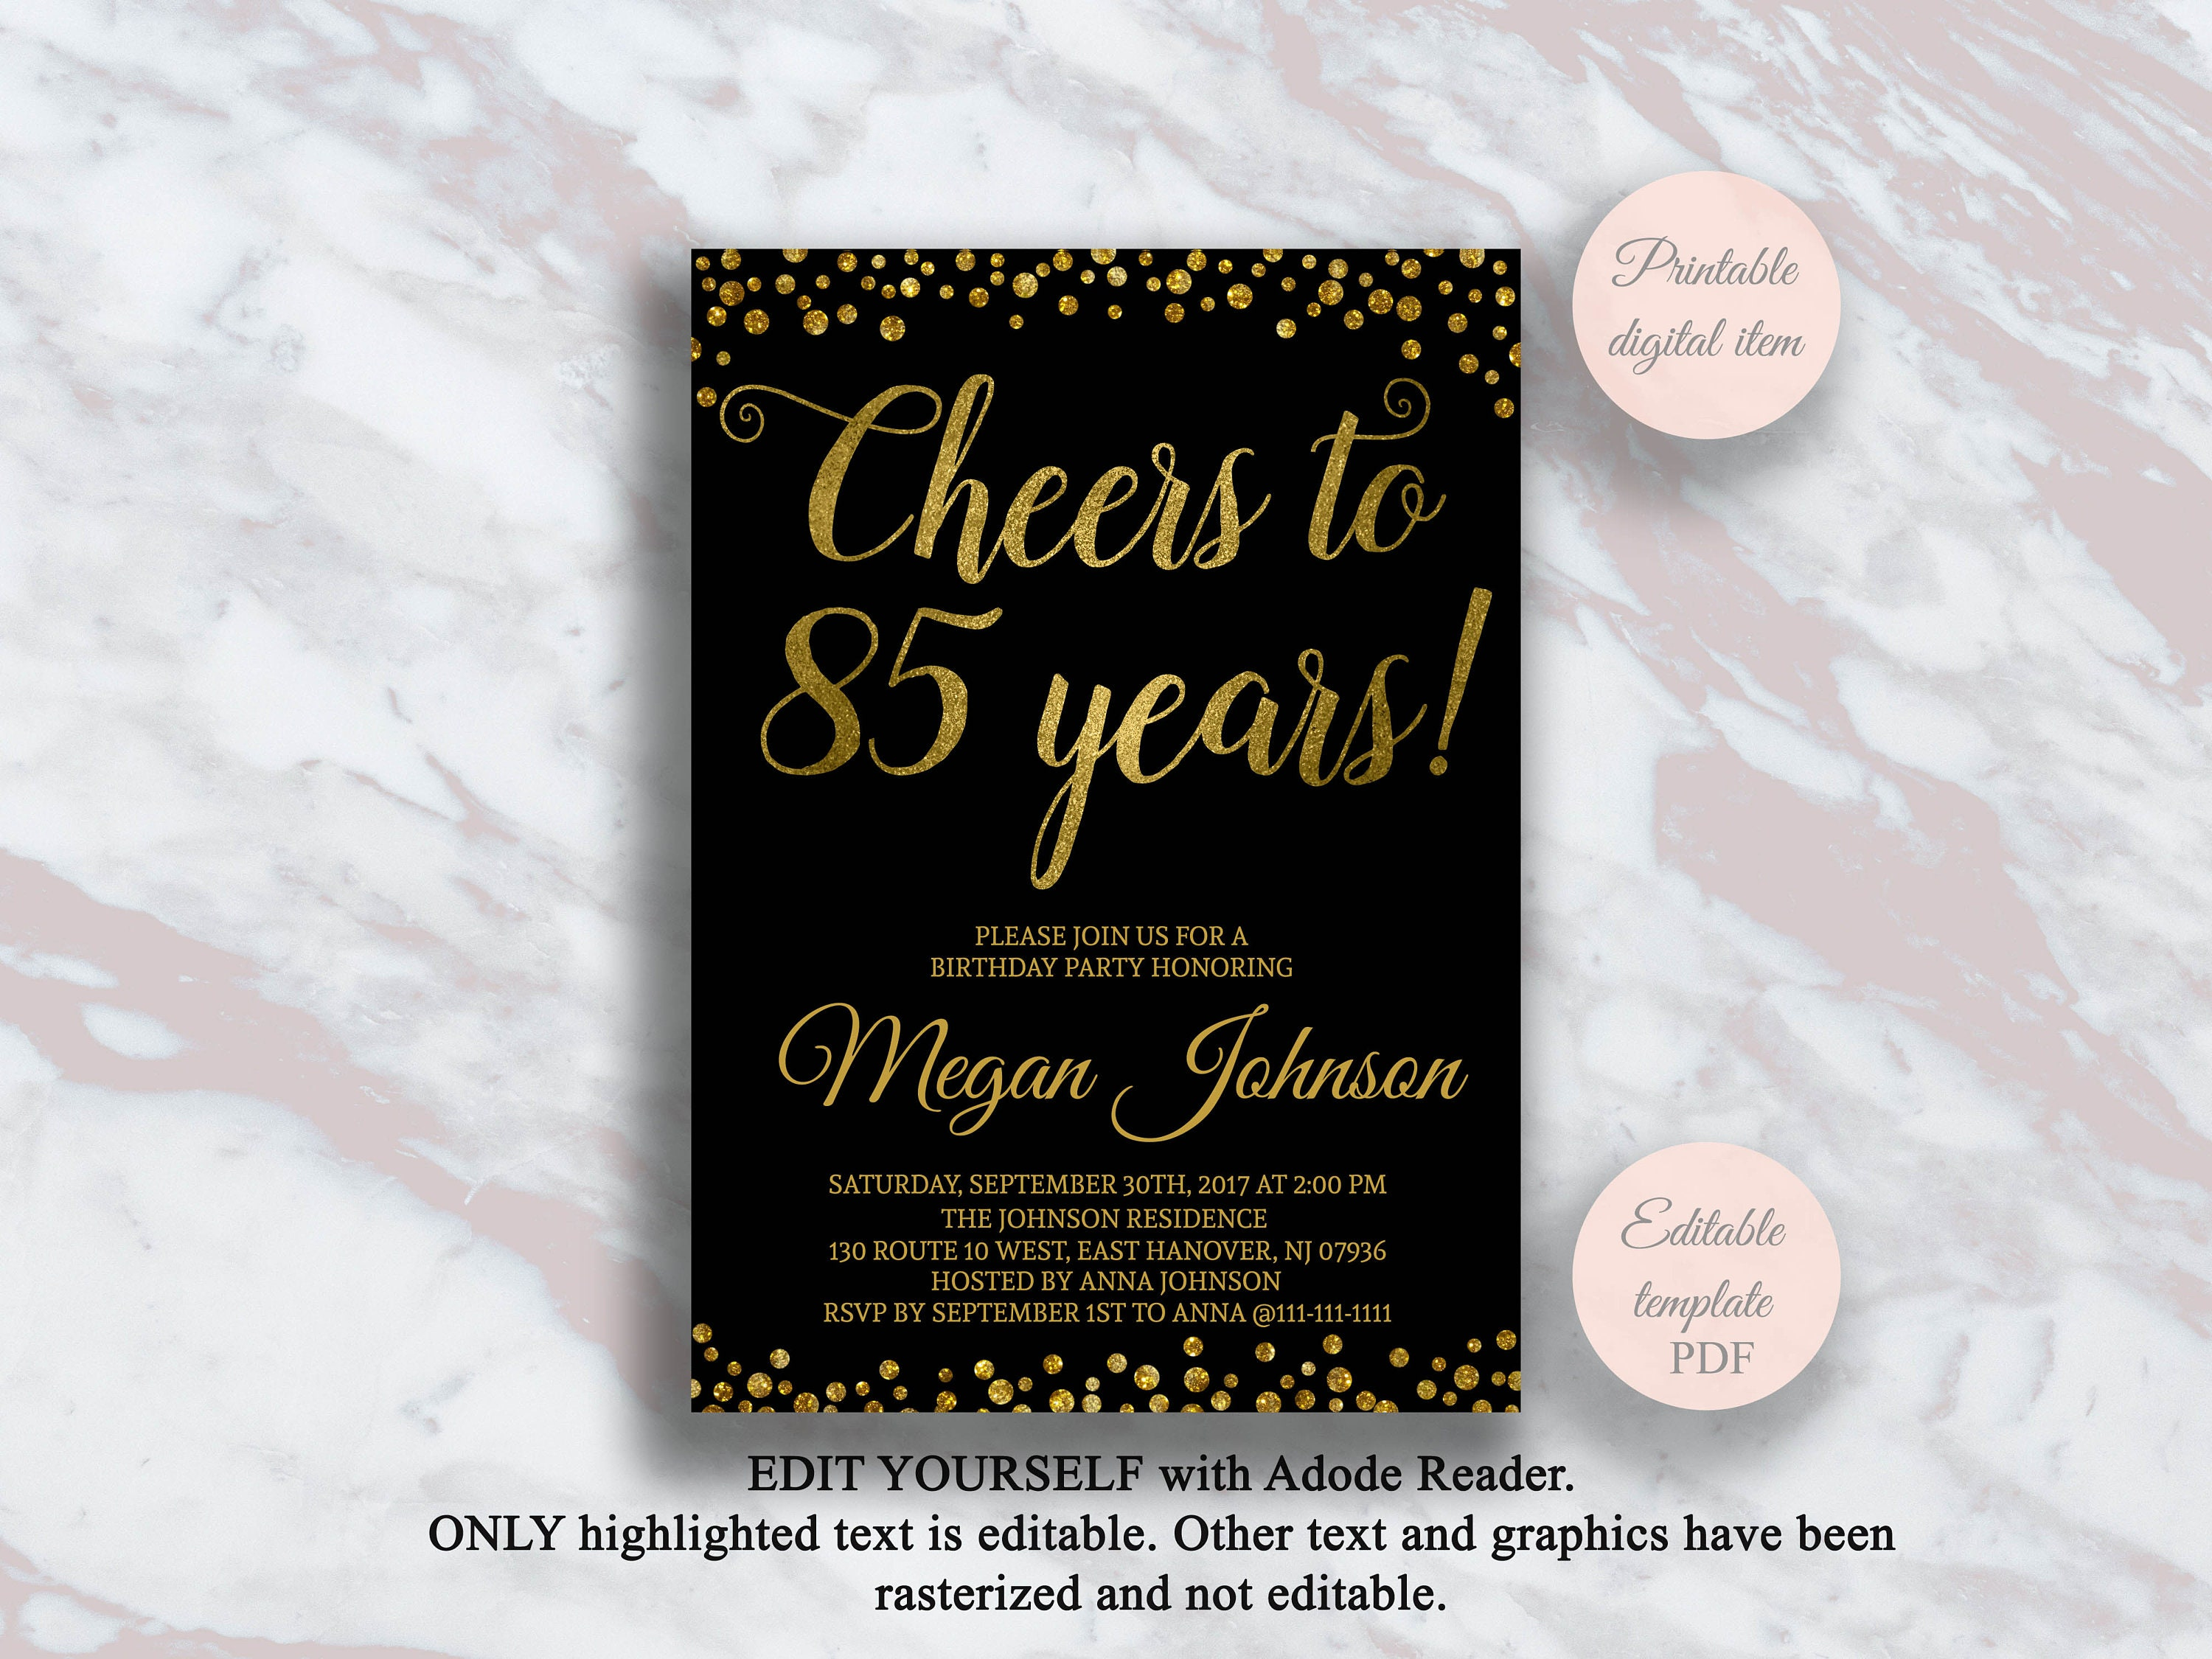 Editable 85th Birthday Invitation Cheers To 85 Years Black